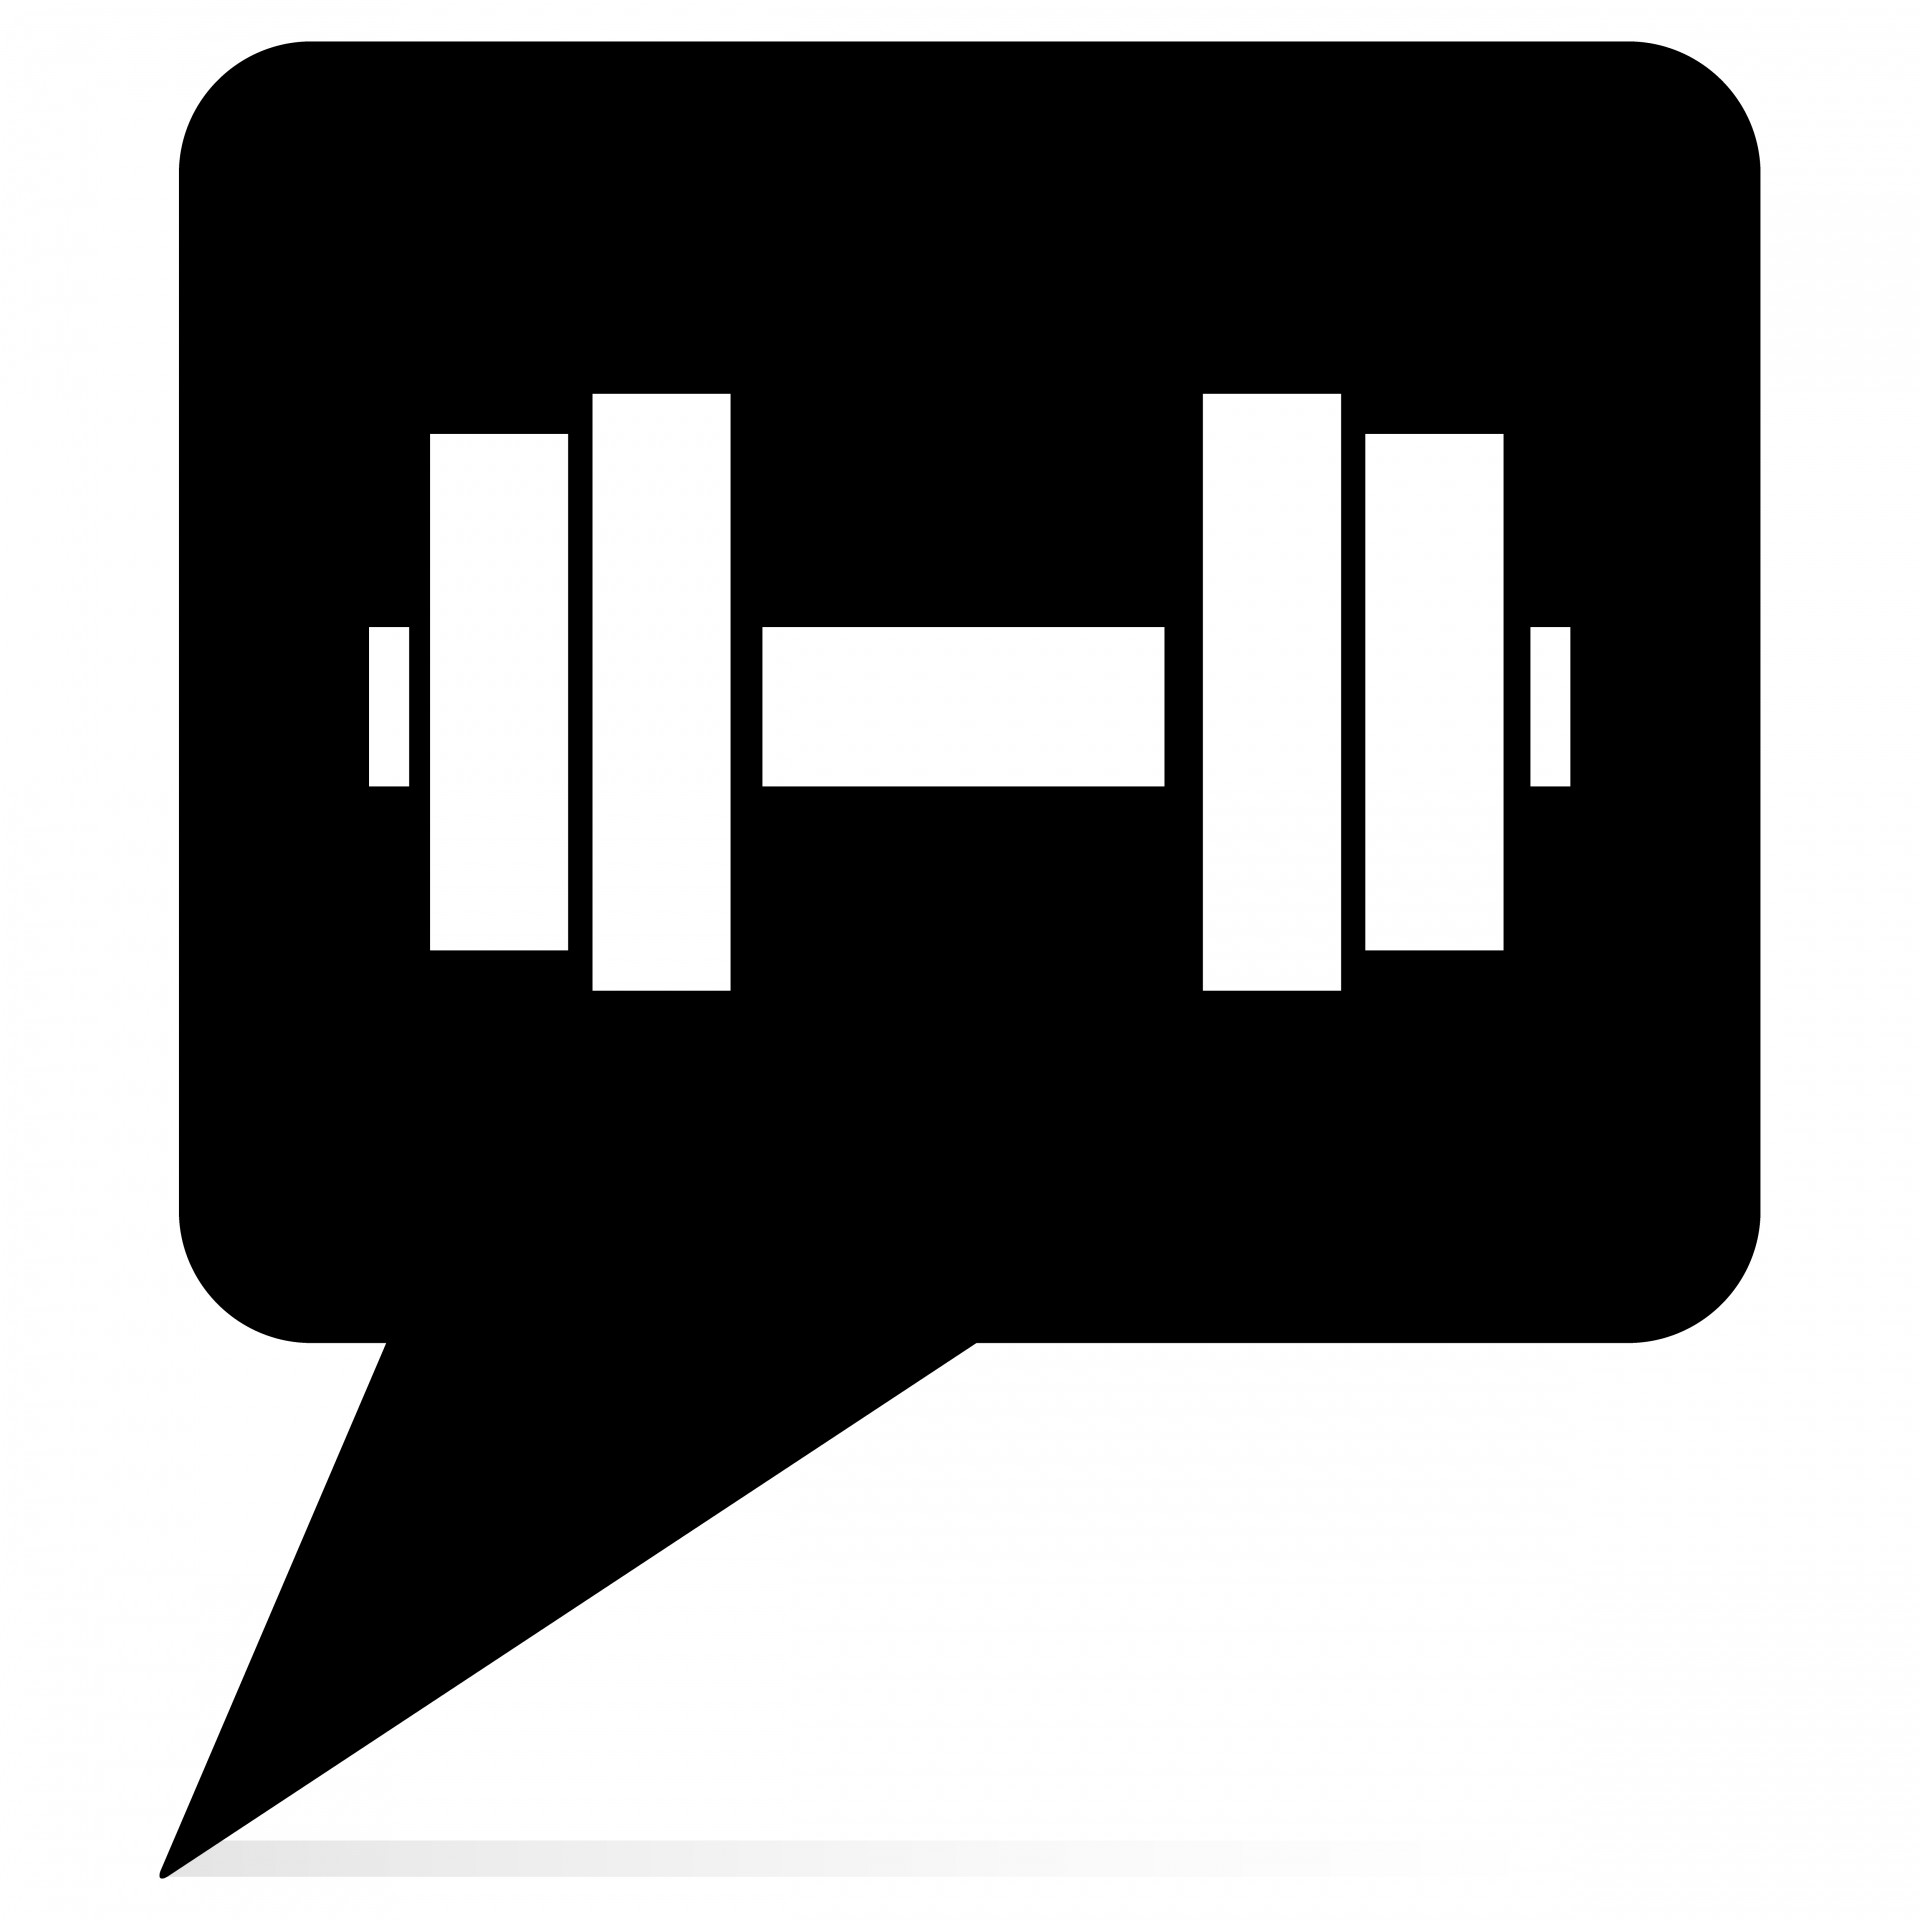 Barbell clipart black and white. Free stock photo public